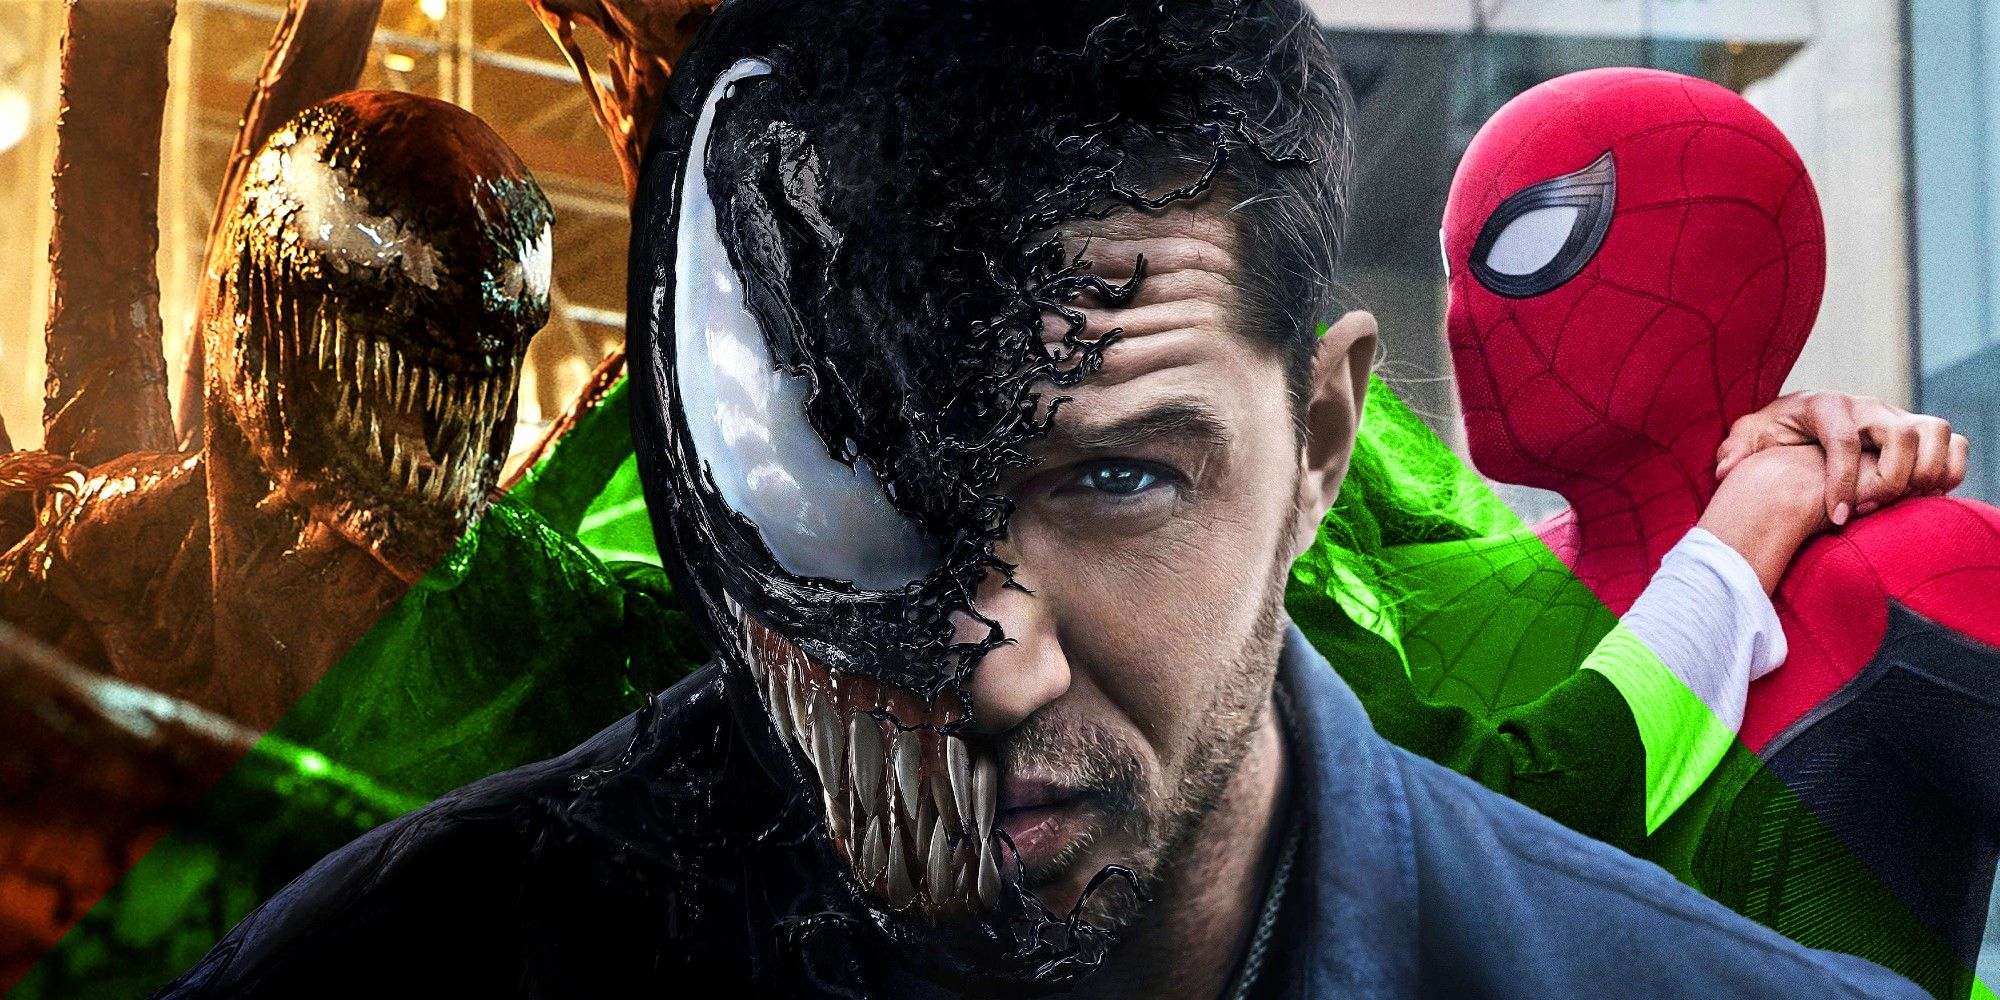 Venom 2: How Eddie Teleports To The MCU At The End | Tech Crunch